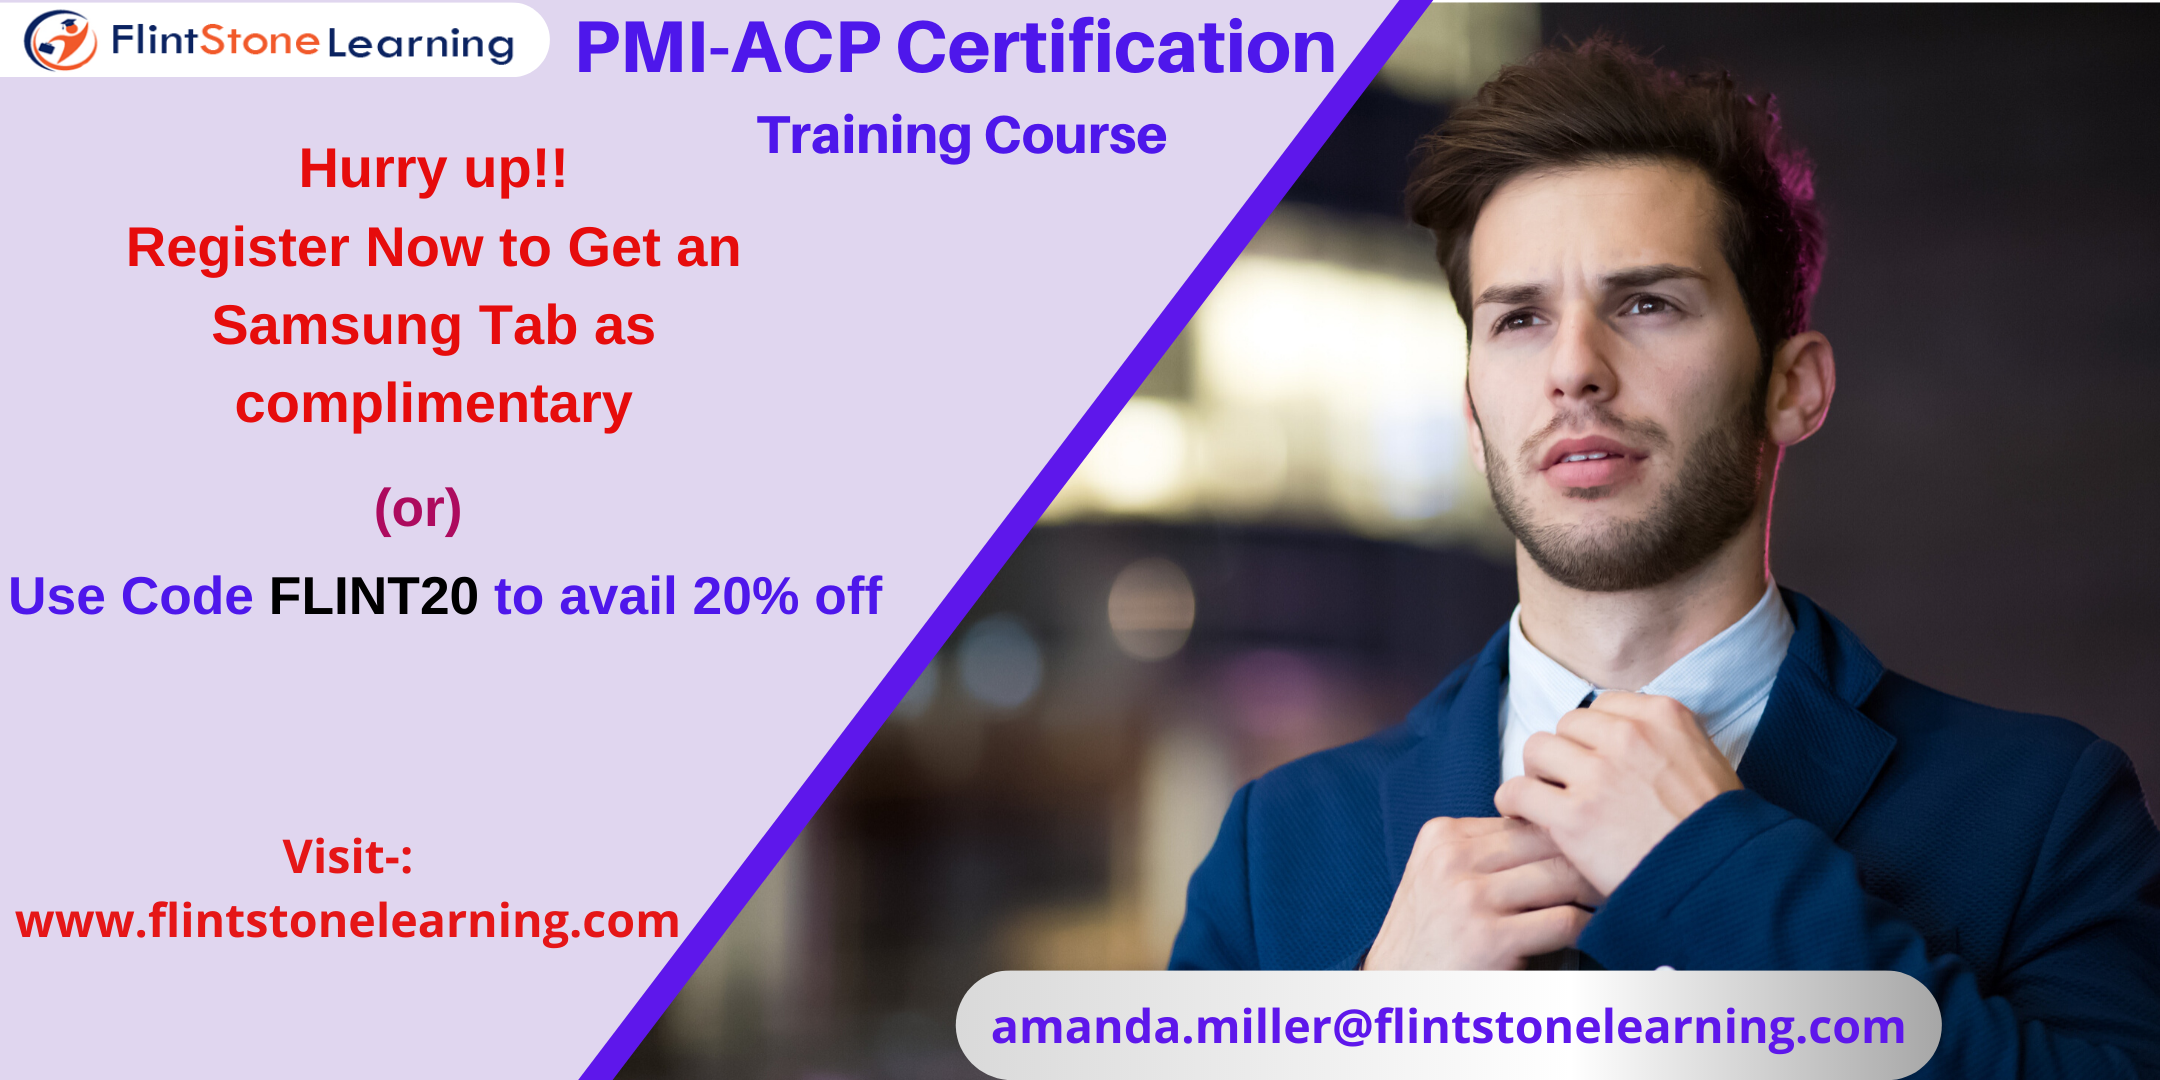 PMI-ACP Certification Training Course in Centennial, CO